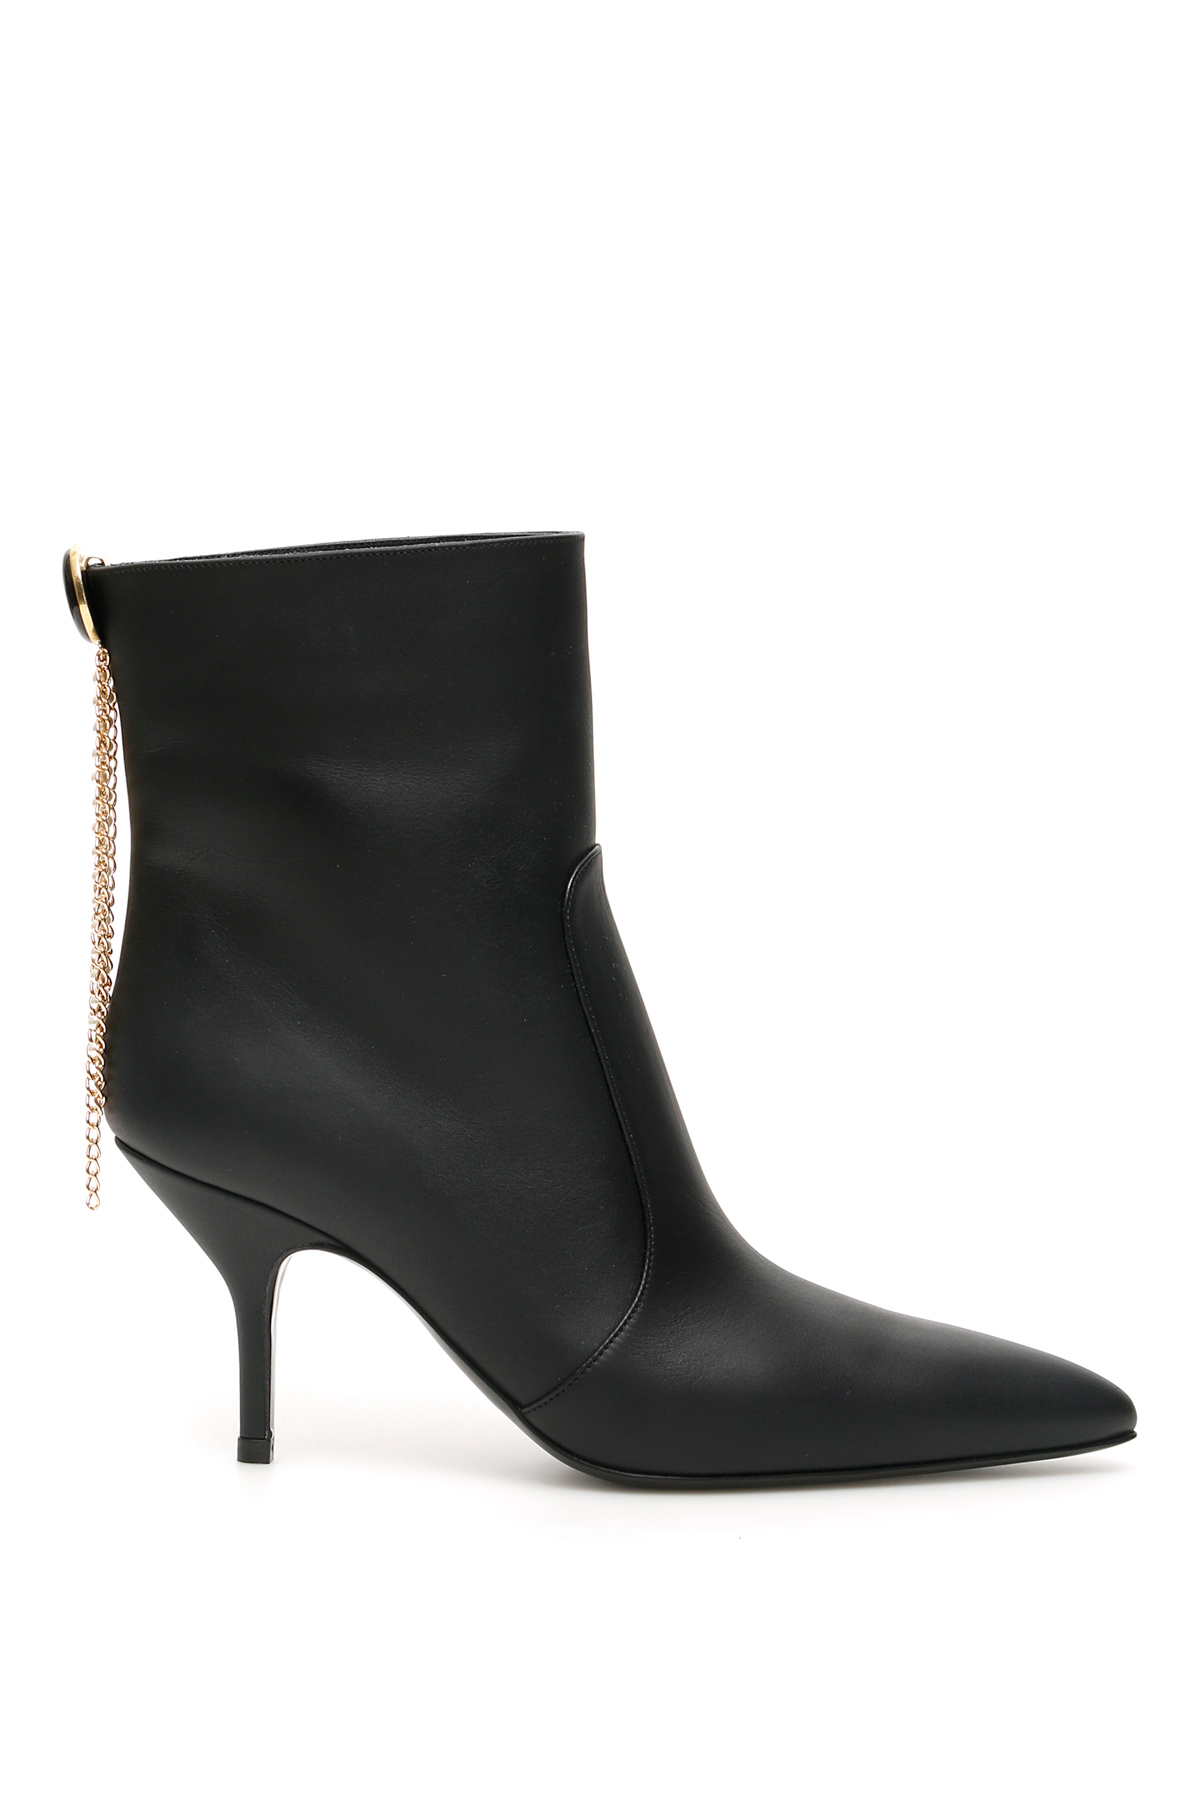 MAGDA BUTRYM EGYPT CHARM ANKLE BOOTS 36 Black Leather